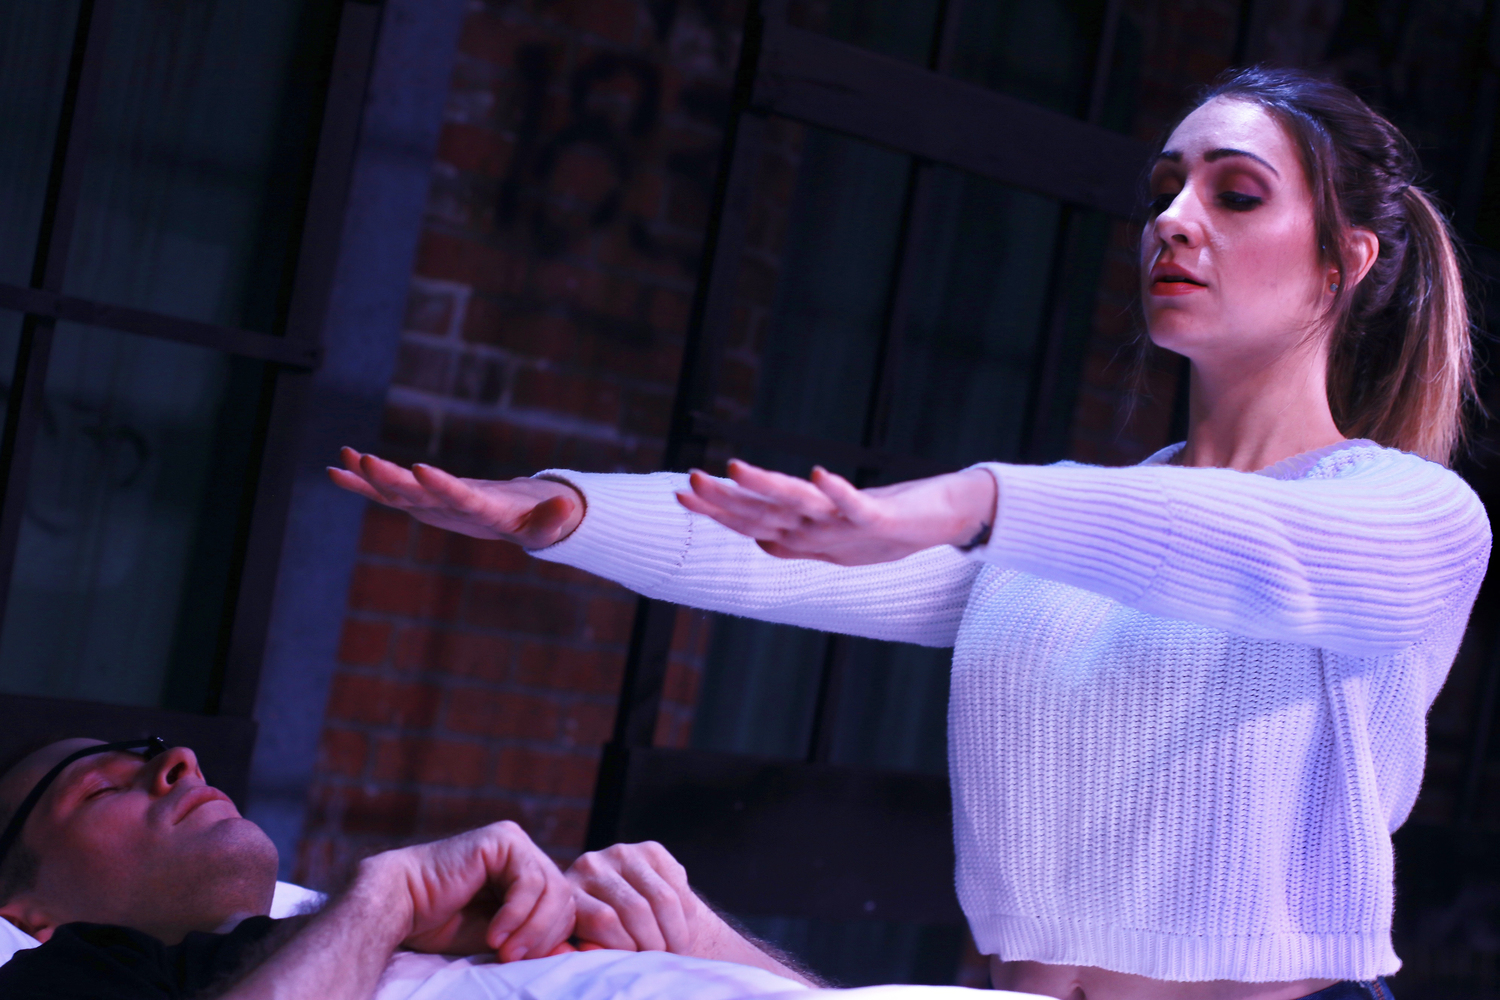 BWW Review: GRUESOME PLAYGROUND INJURIES at TheatreLAB: A Therapy Session Onstage... Of Sorts...